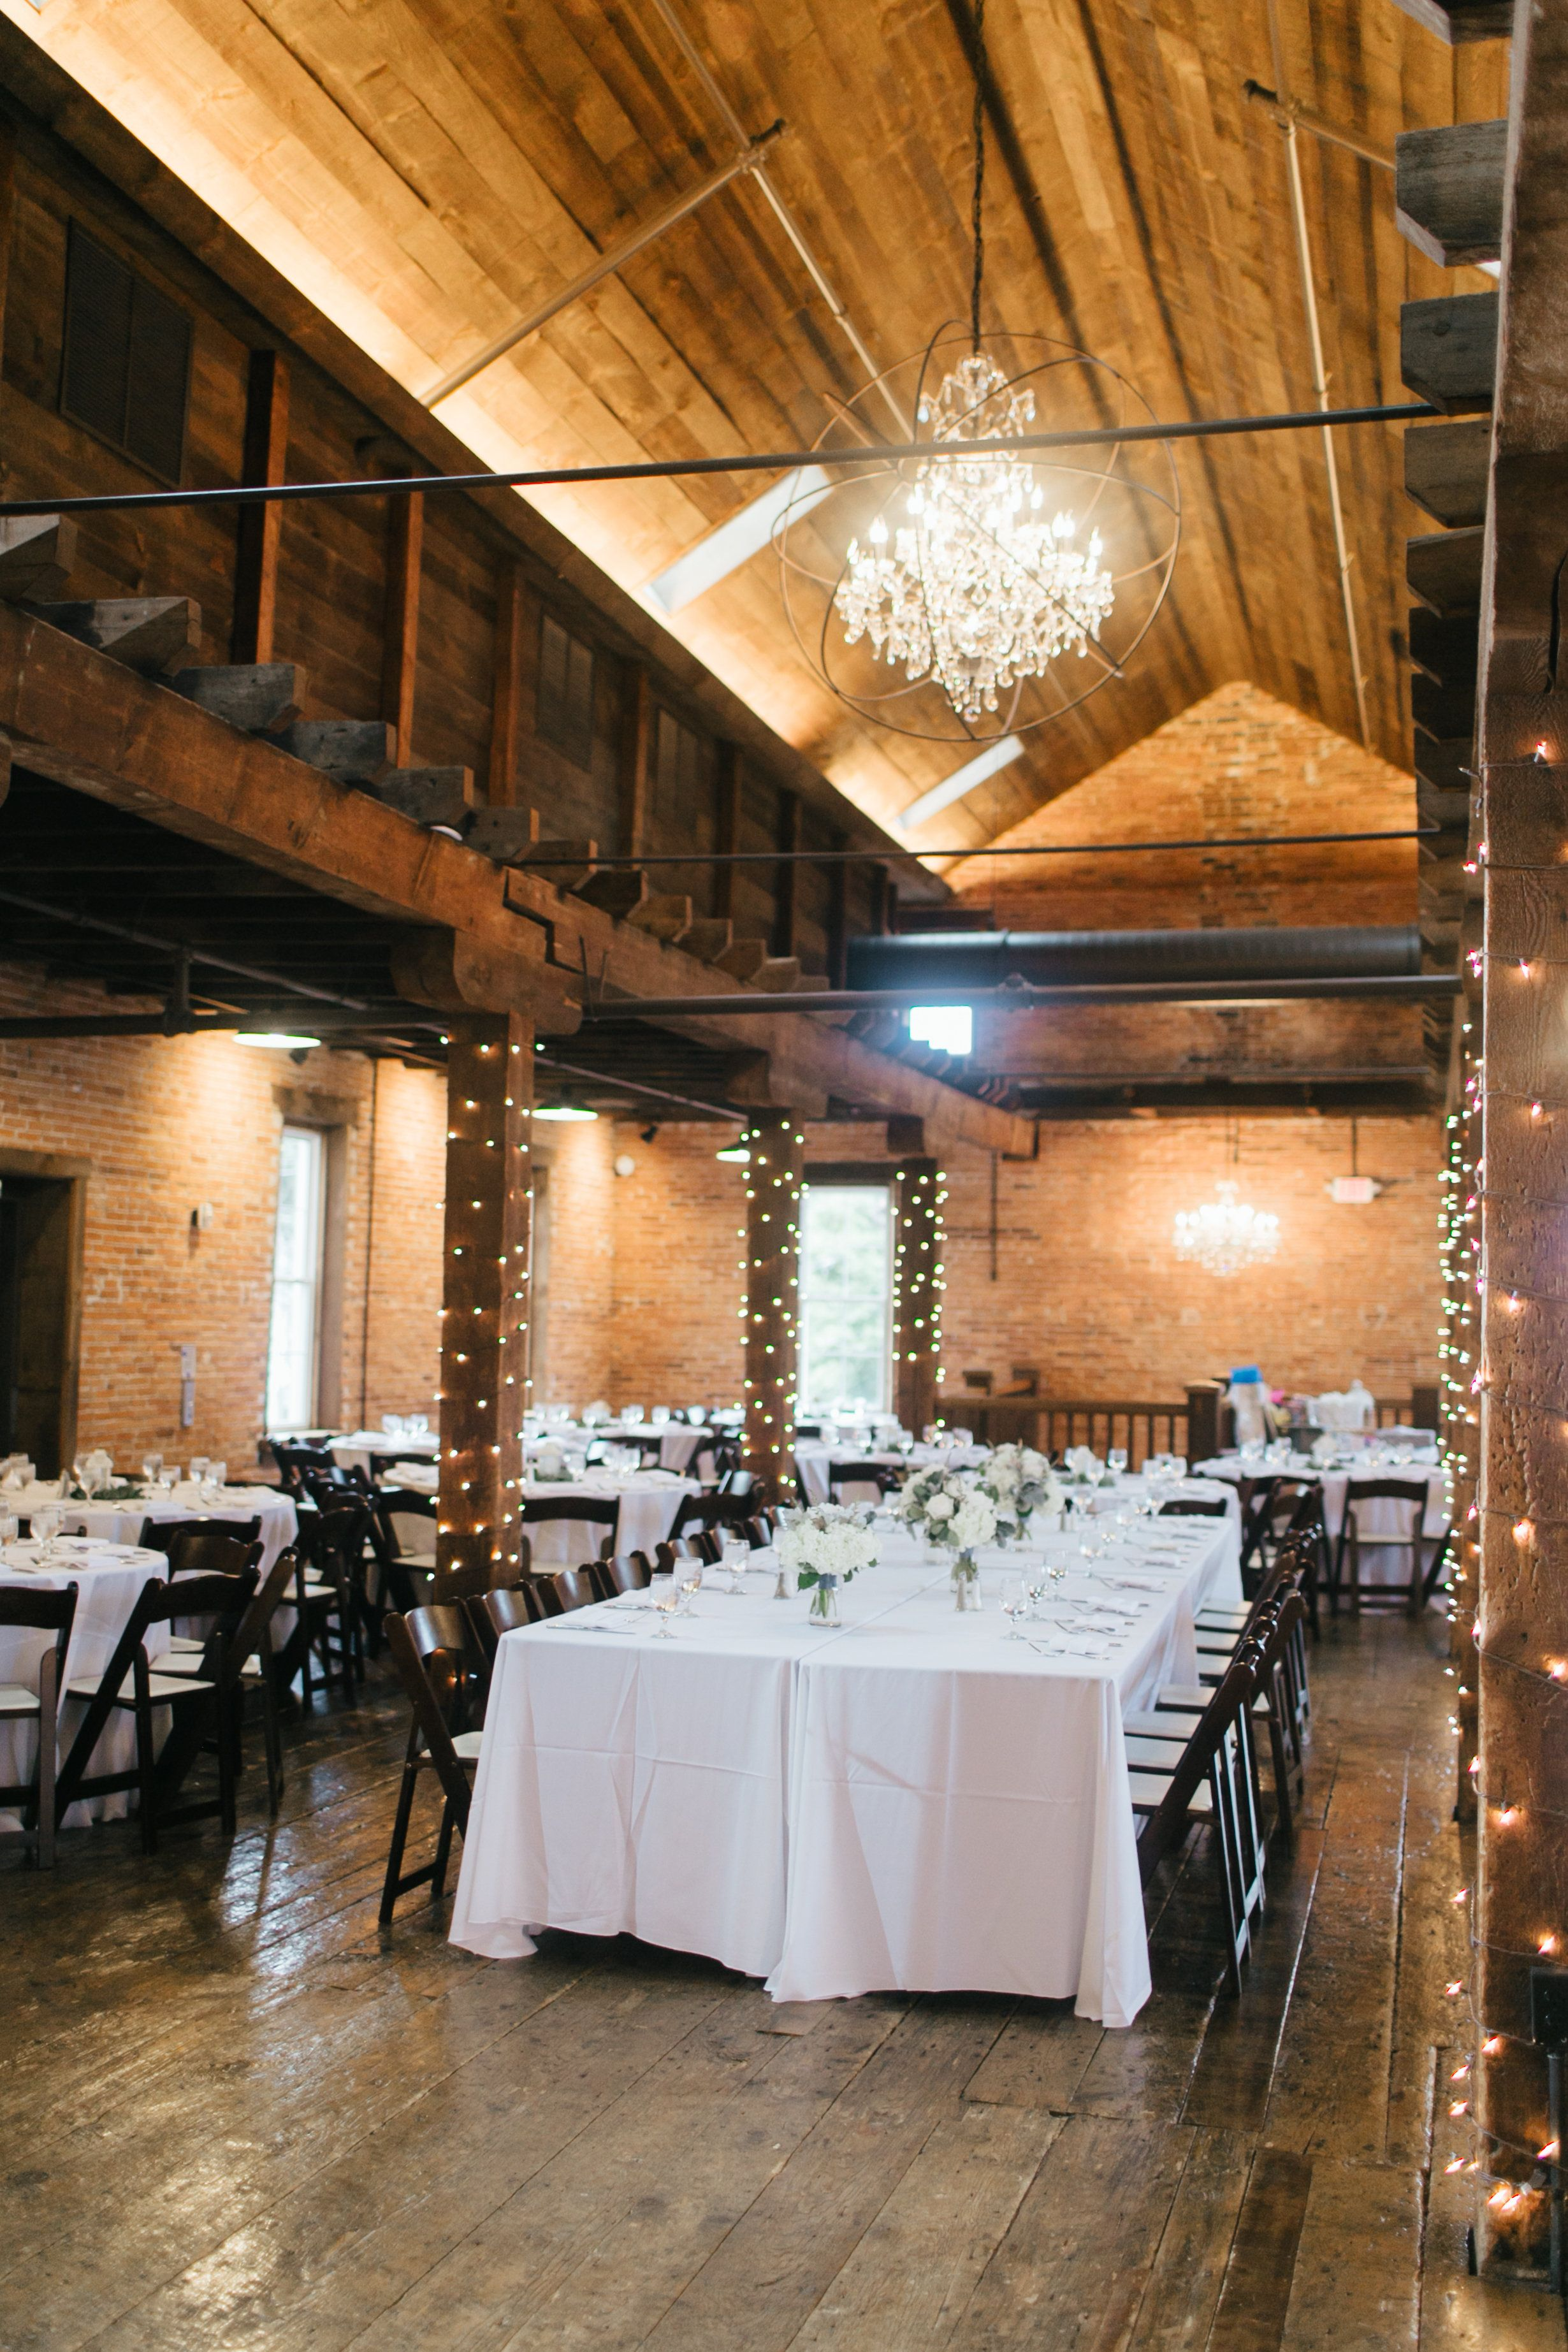 The Booking House Wedding Reception Ceremony Brick Warehouse Wedding Venue Ins Warehouse Wedding Venue Wedding Dresses With Flowers Wedding Venue Inspiration